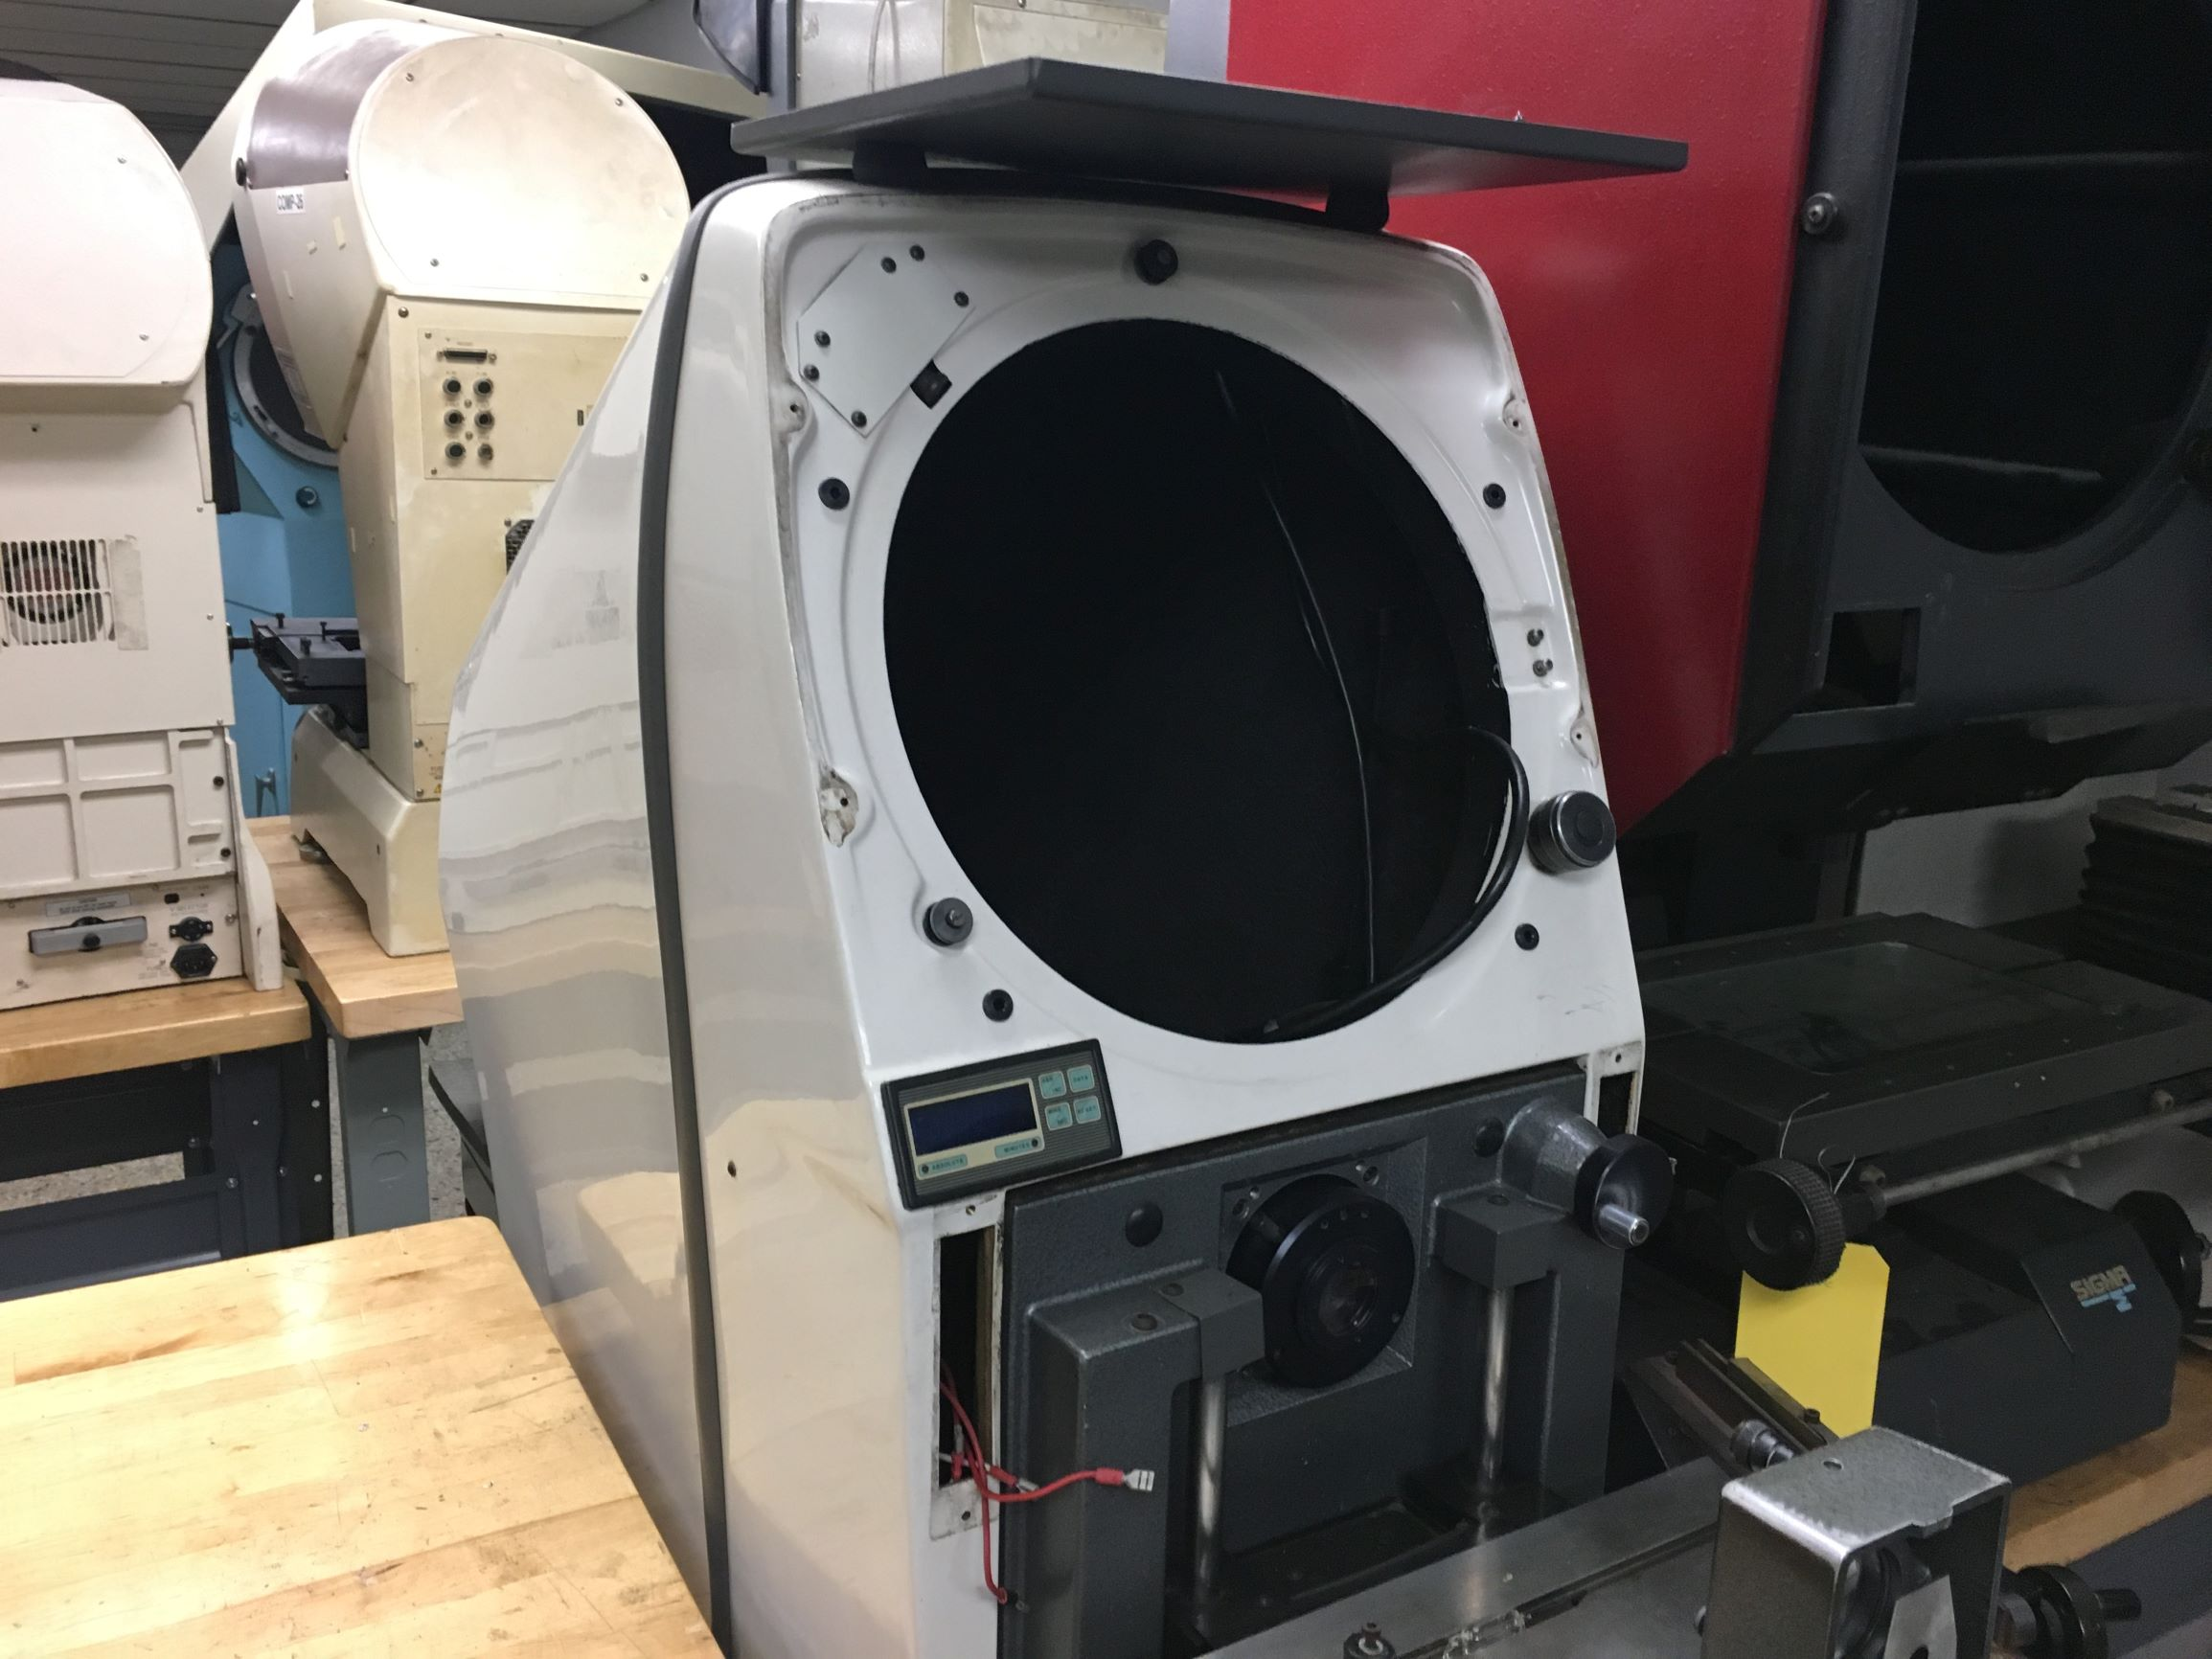 Gagemaster Model 29/GM5 Bench Top Optical Comparator, S/N 1445381287, New Approx 1988. (Availability Pending)